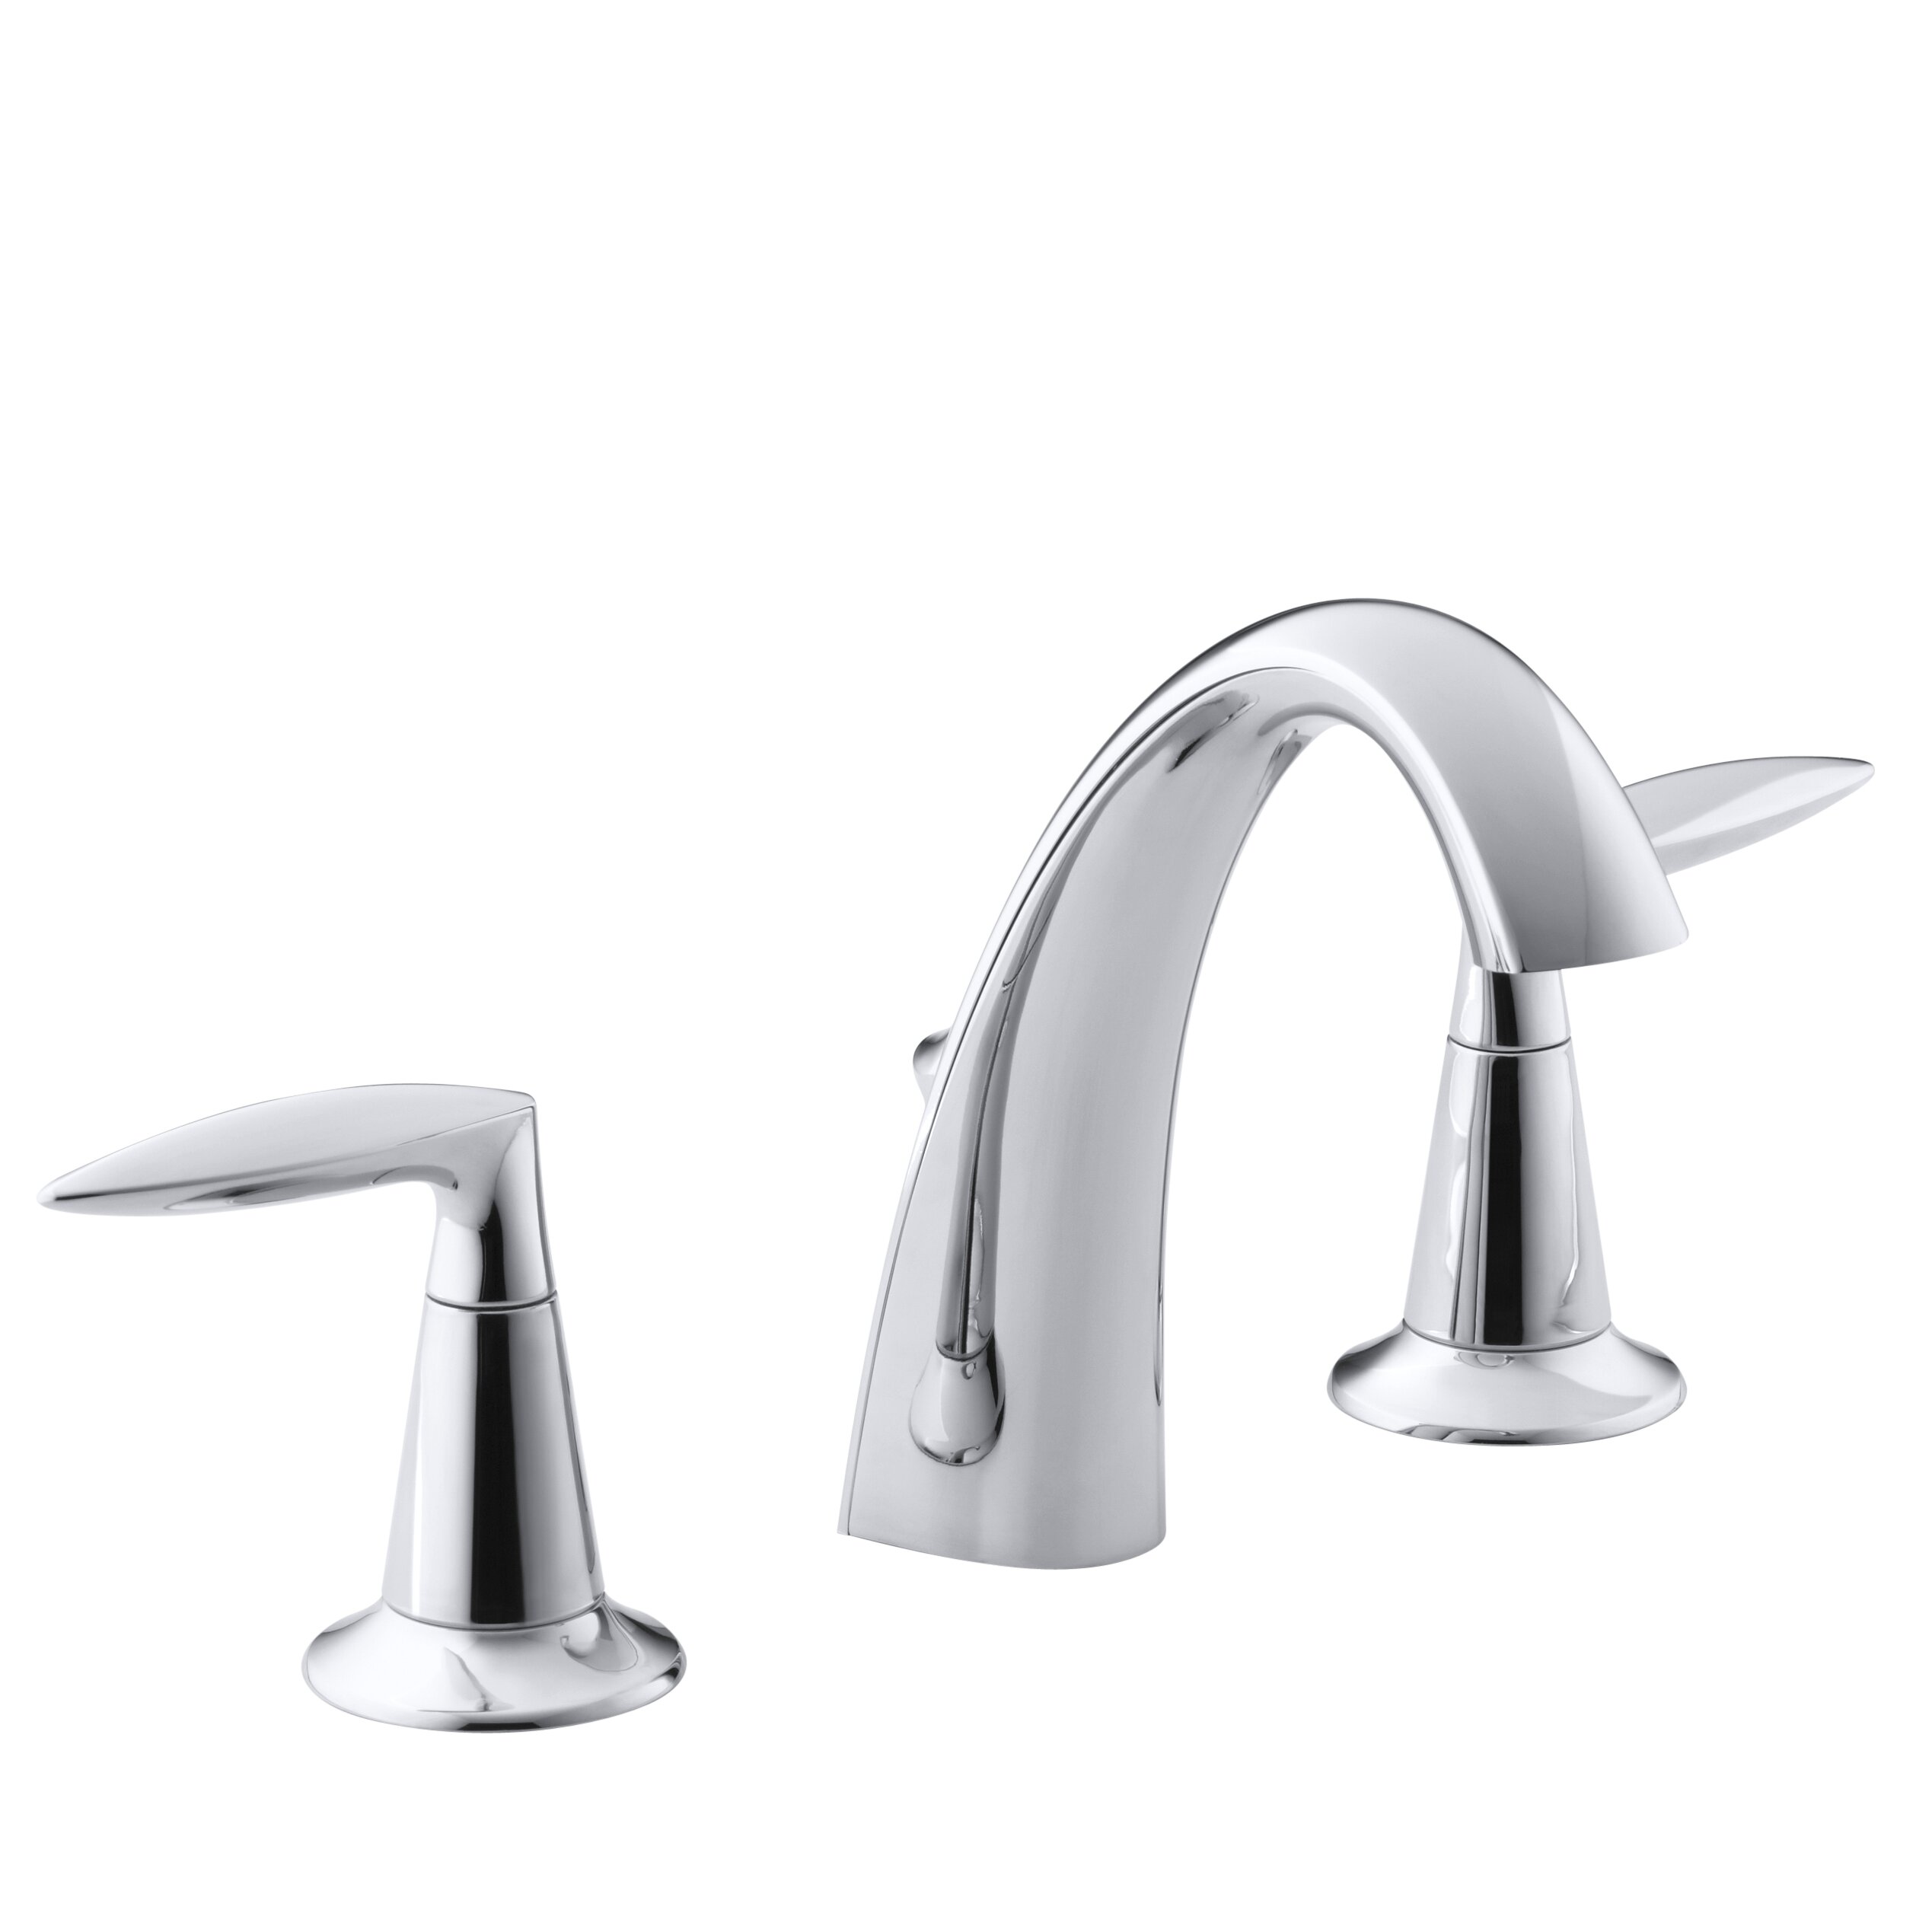 Kohler Alteo Widespread Bathroom Sink Faucet Reviews Wayfair